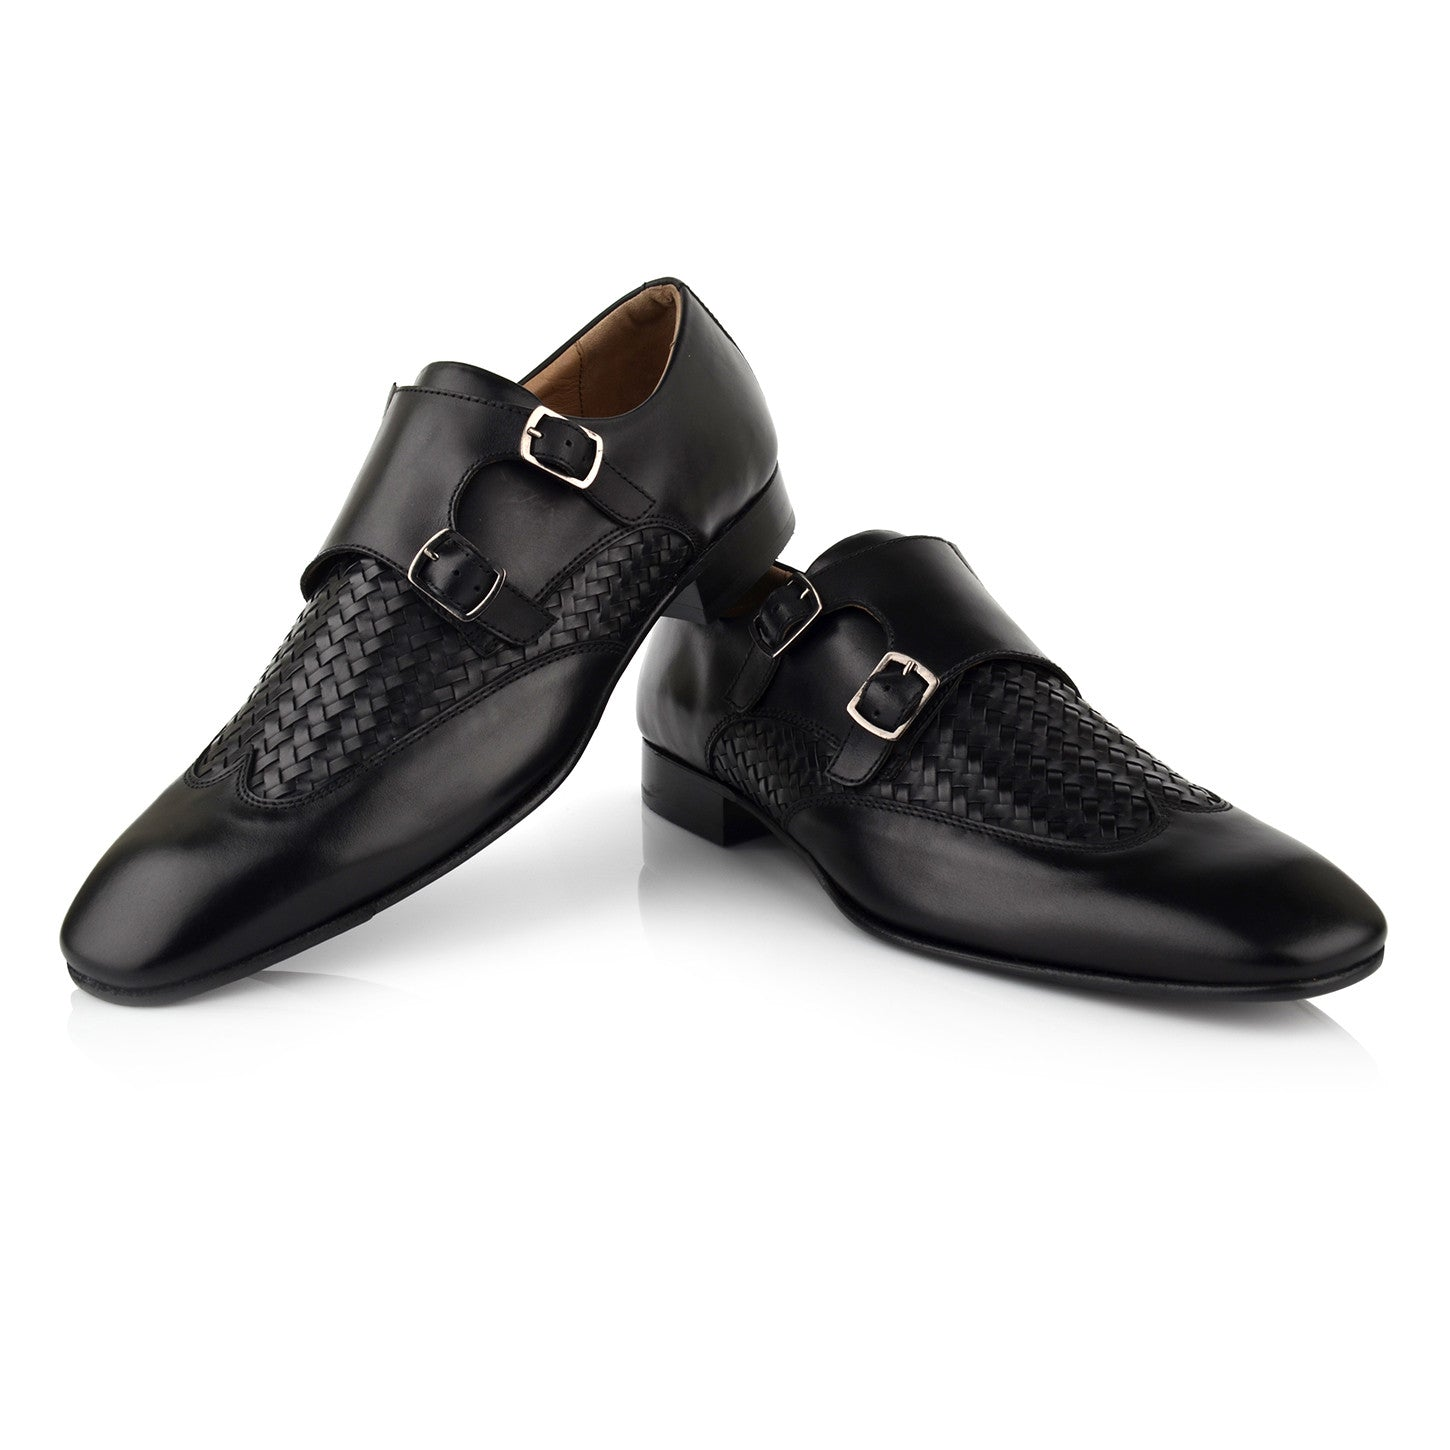 LM512 - Language Texo Men's Dress Black Monk Shoes